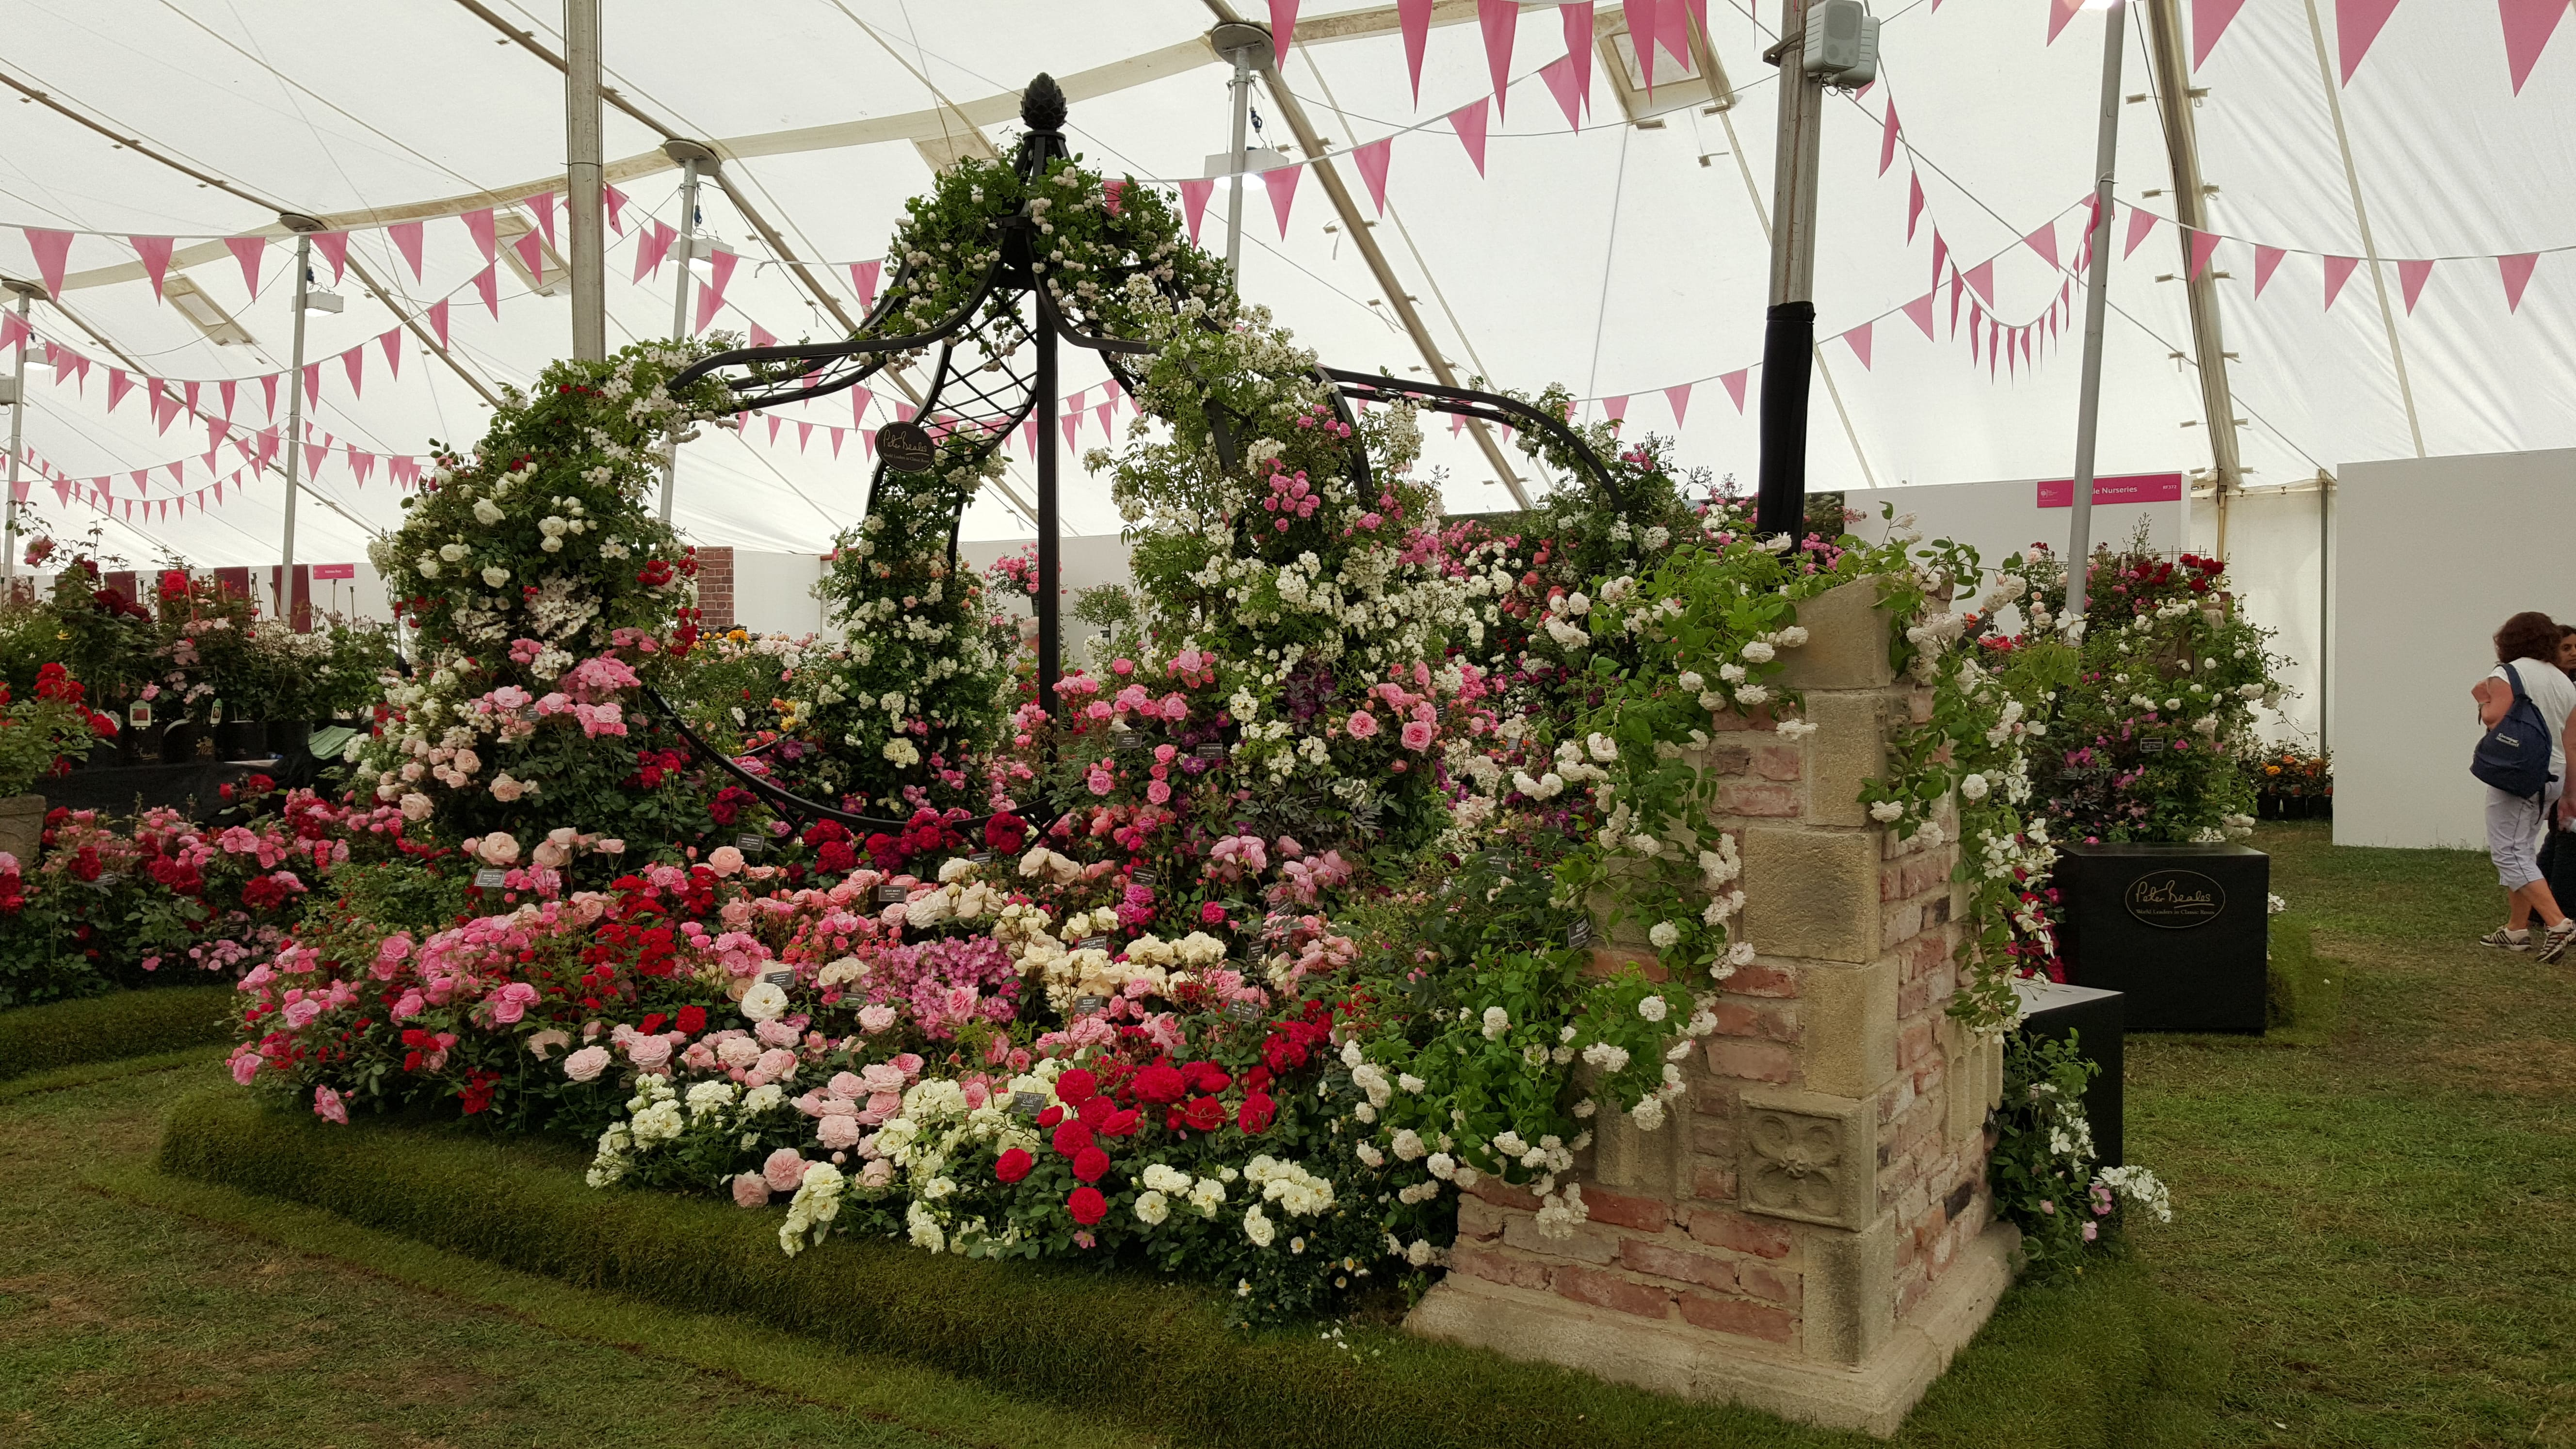 Hampton court flower show 2015 wallbarn - Hampton court flower show ...